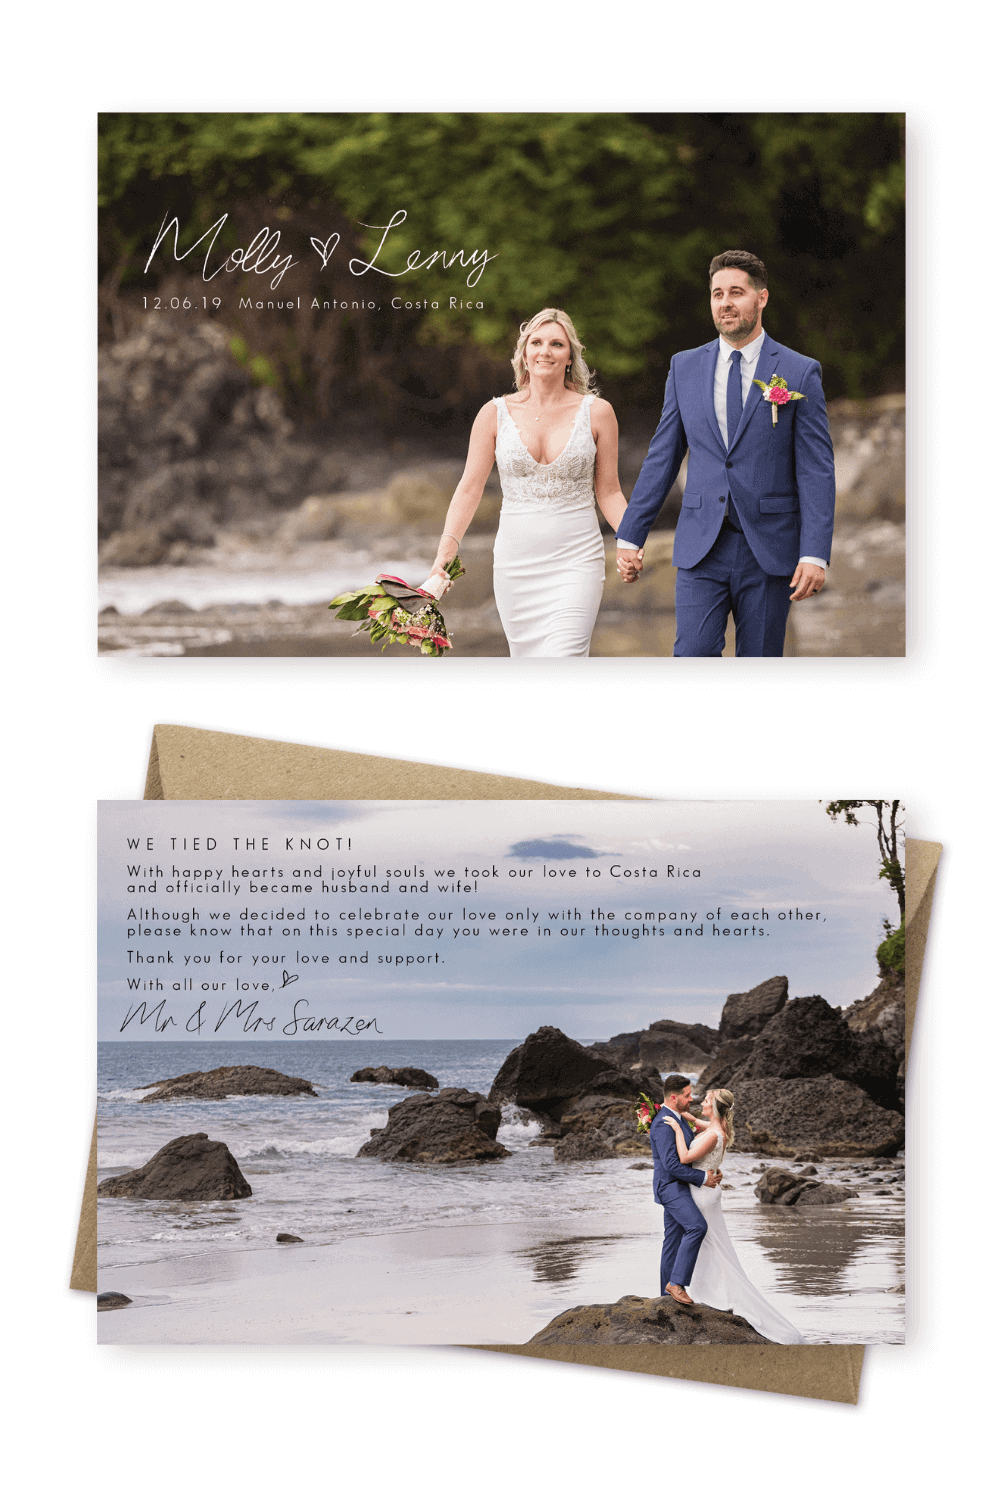 Elopement Announcement Wording Card Ideas Arenas Foto Costa Rica For the Love of Stationery